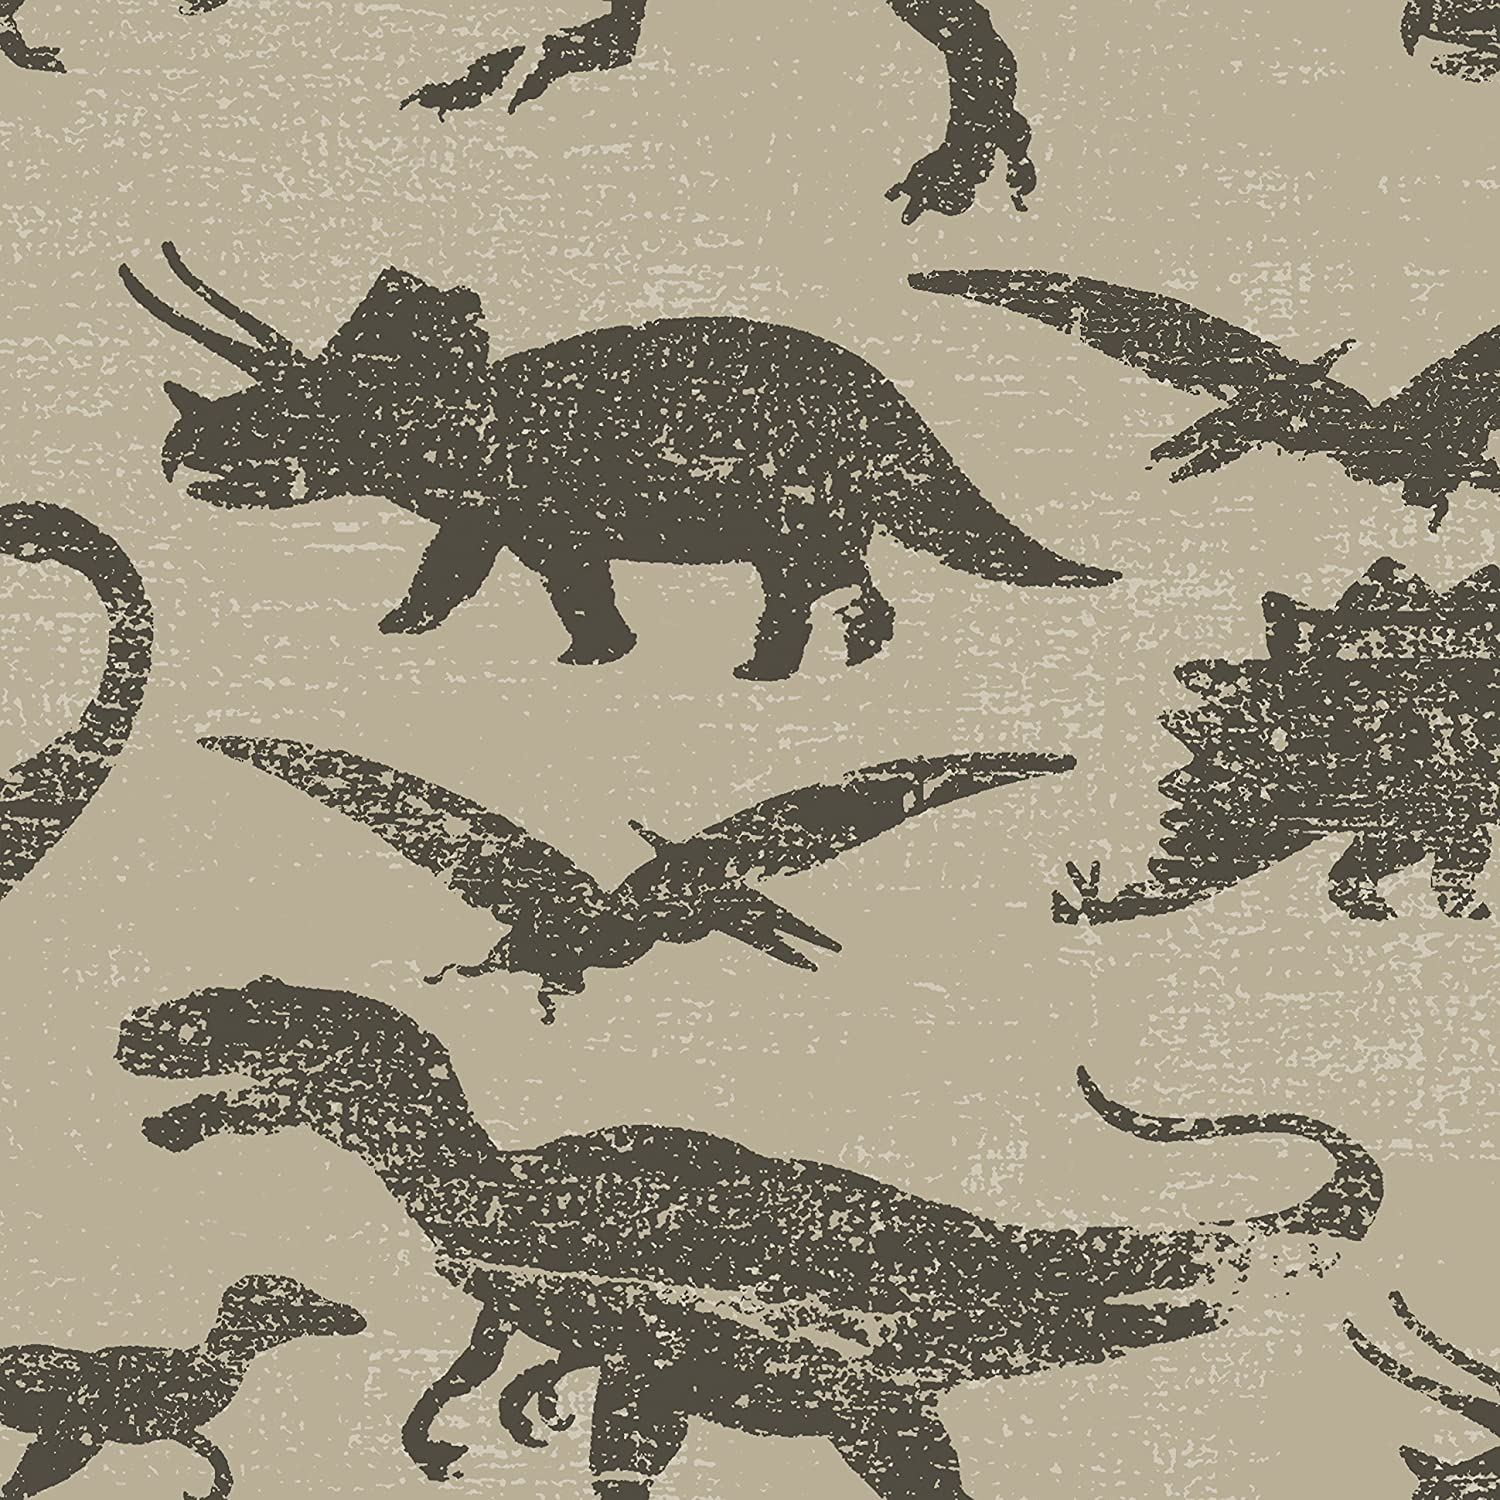 Stripes Self-Adhesive Removable Dinosaurs-Navy and Green Multi Tempaper TK620 Kids Borders